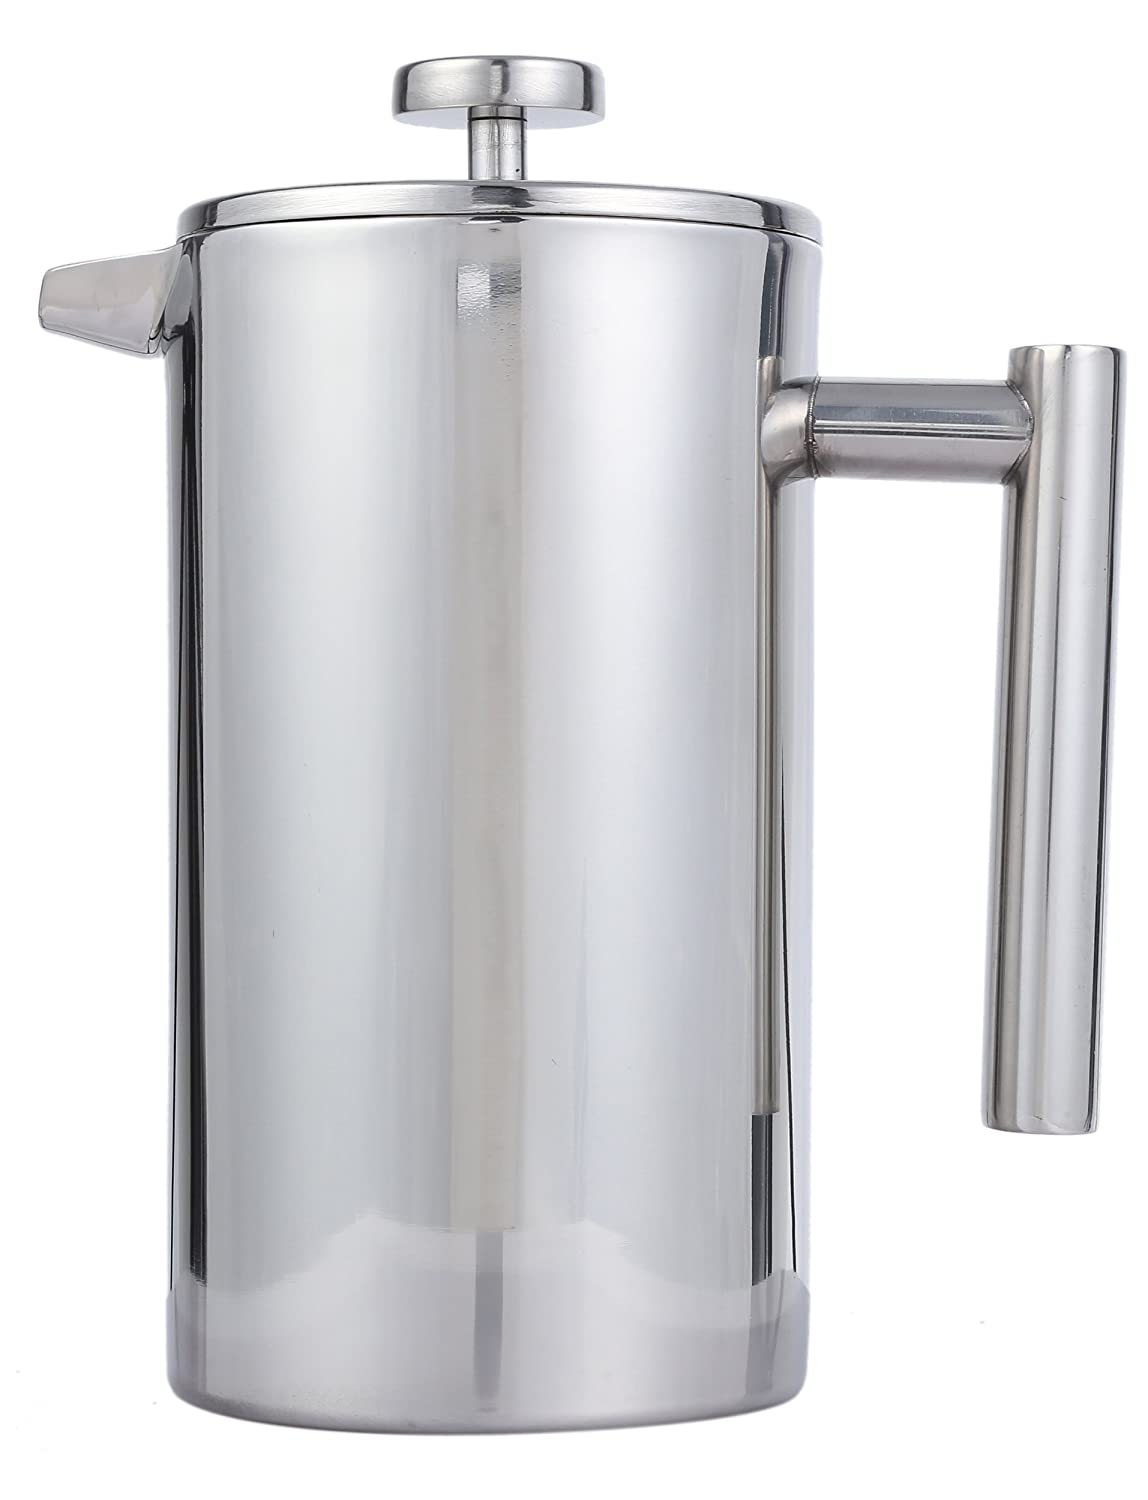 Palm French Press Coffee Maker : French Press Coffee Pot & Tea Maker Set (Cafetiere)- Stainless Steel -... eBay